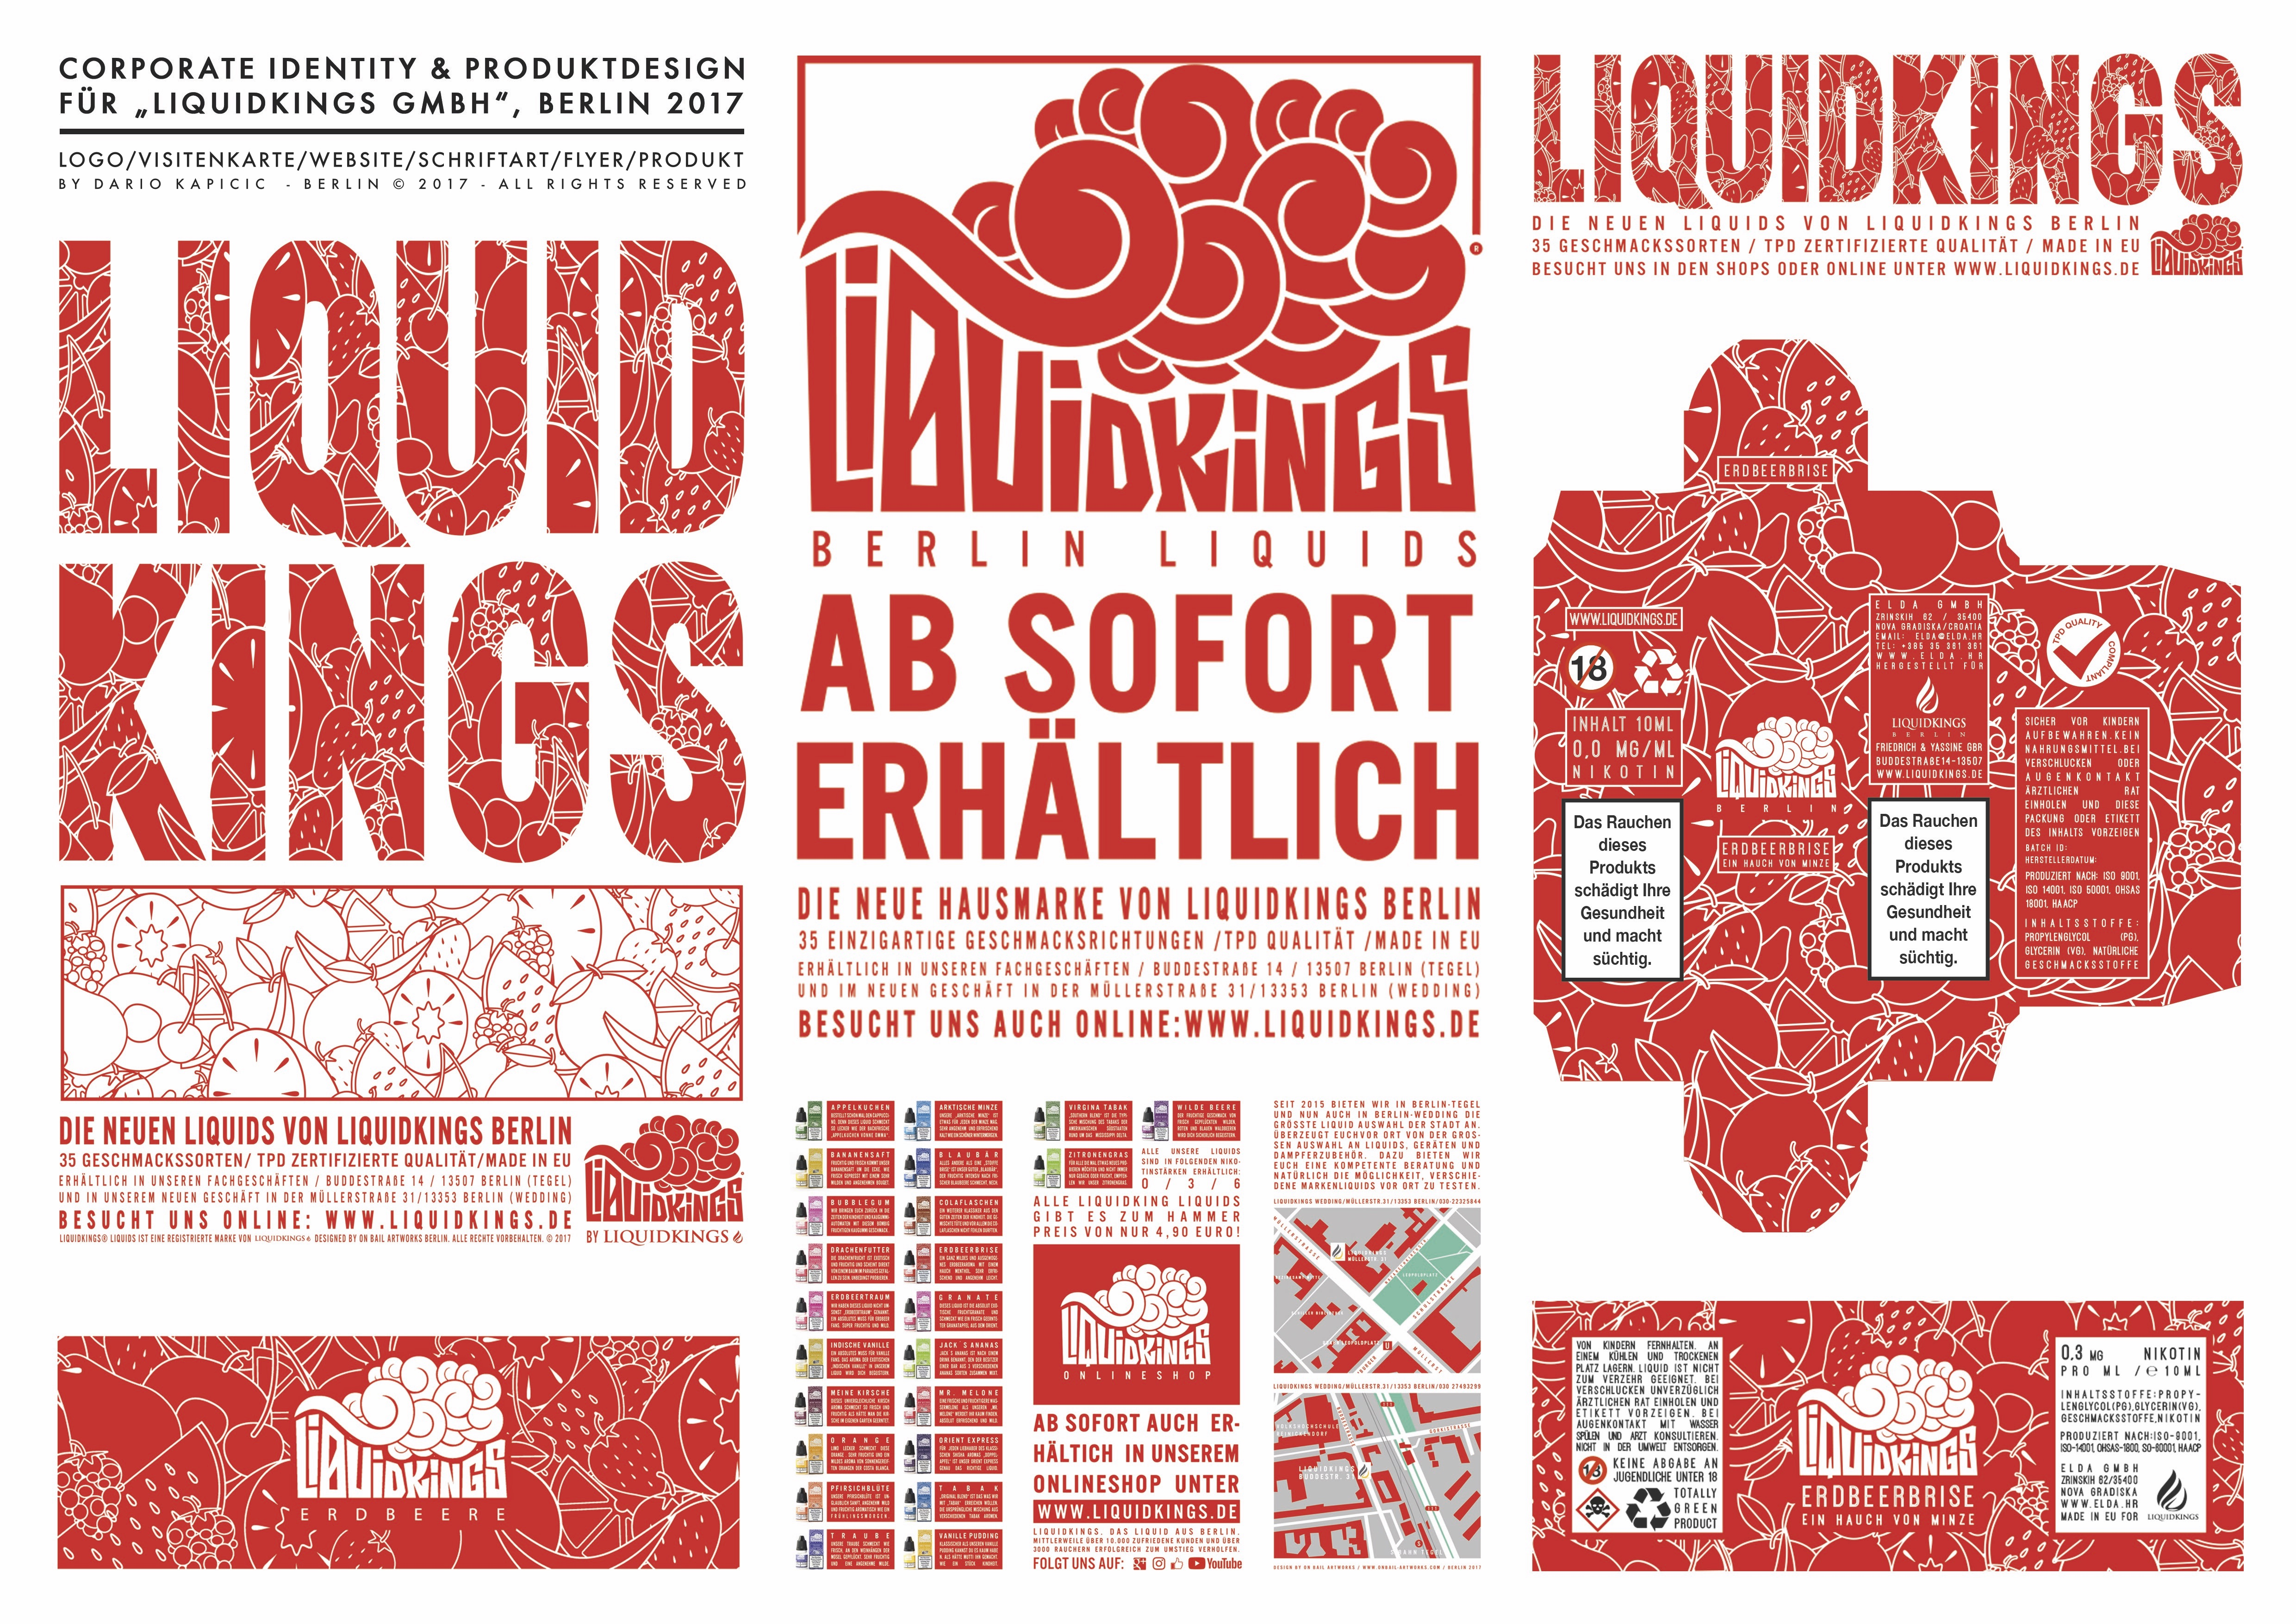 graphic design,grafik design, graffiti,illustration,berlin,post soviet,vector,vektor,sketch,corporate identity,produkt design,verpackungsdesign